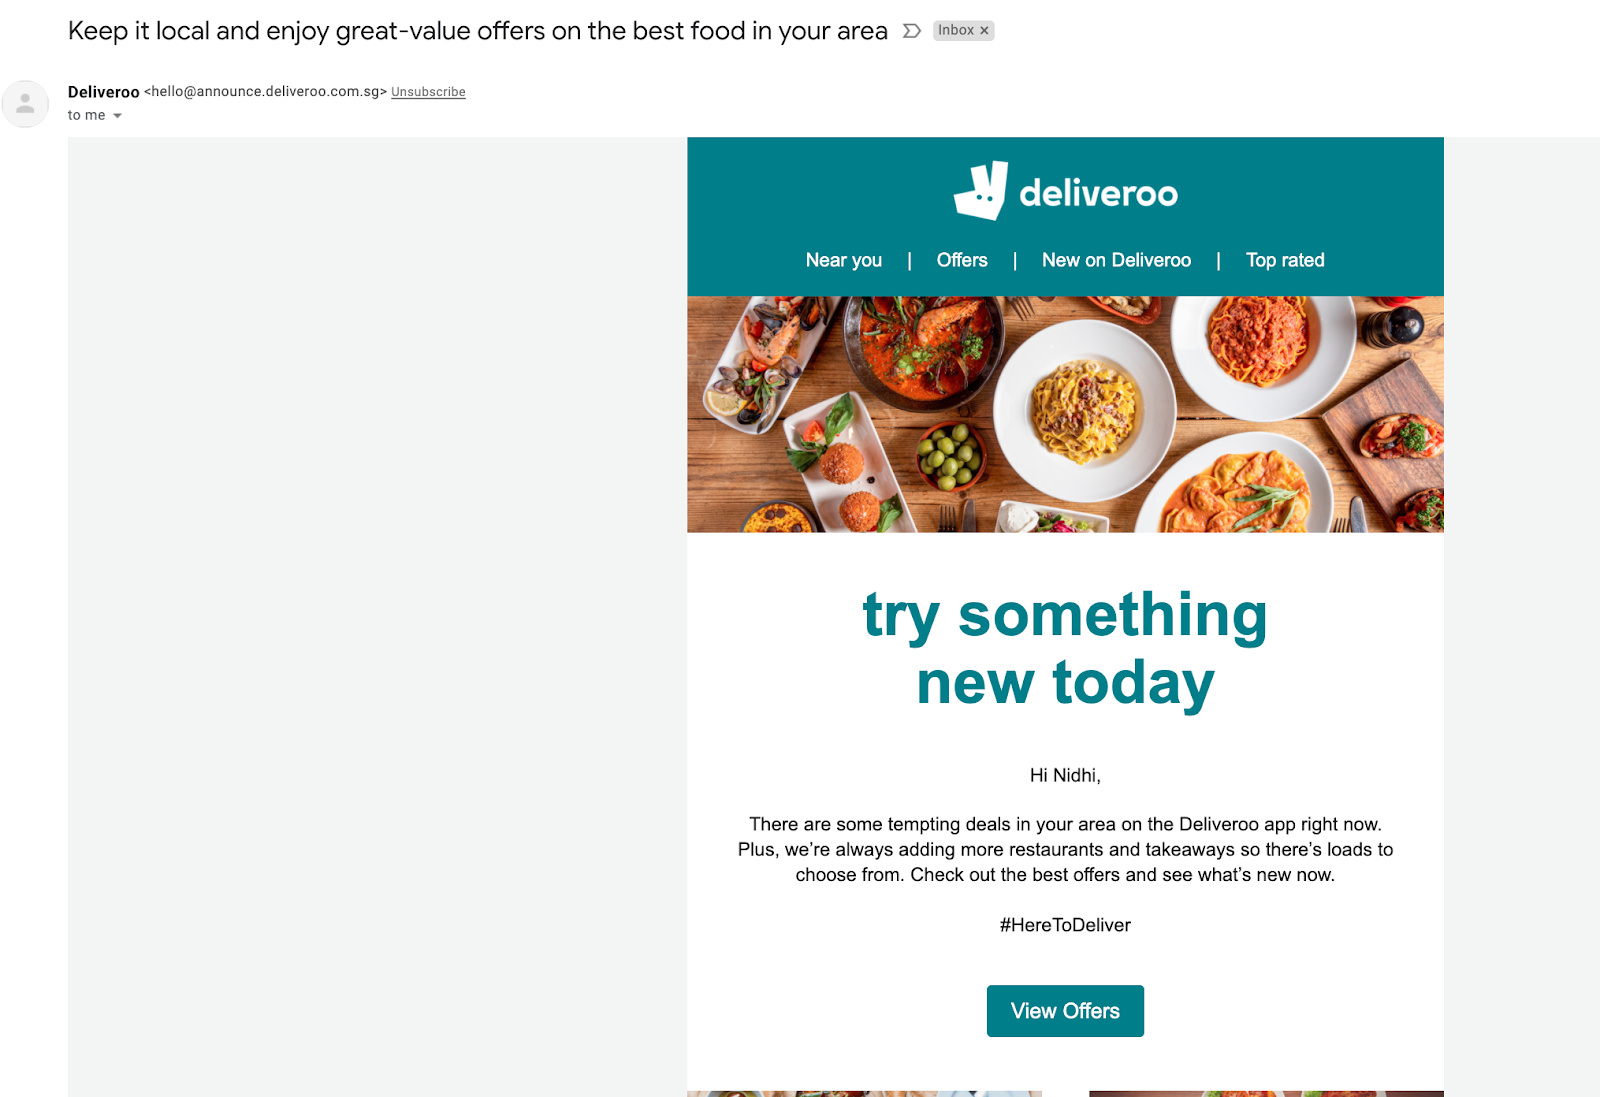 Email marketing campaign example by Deliveroo